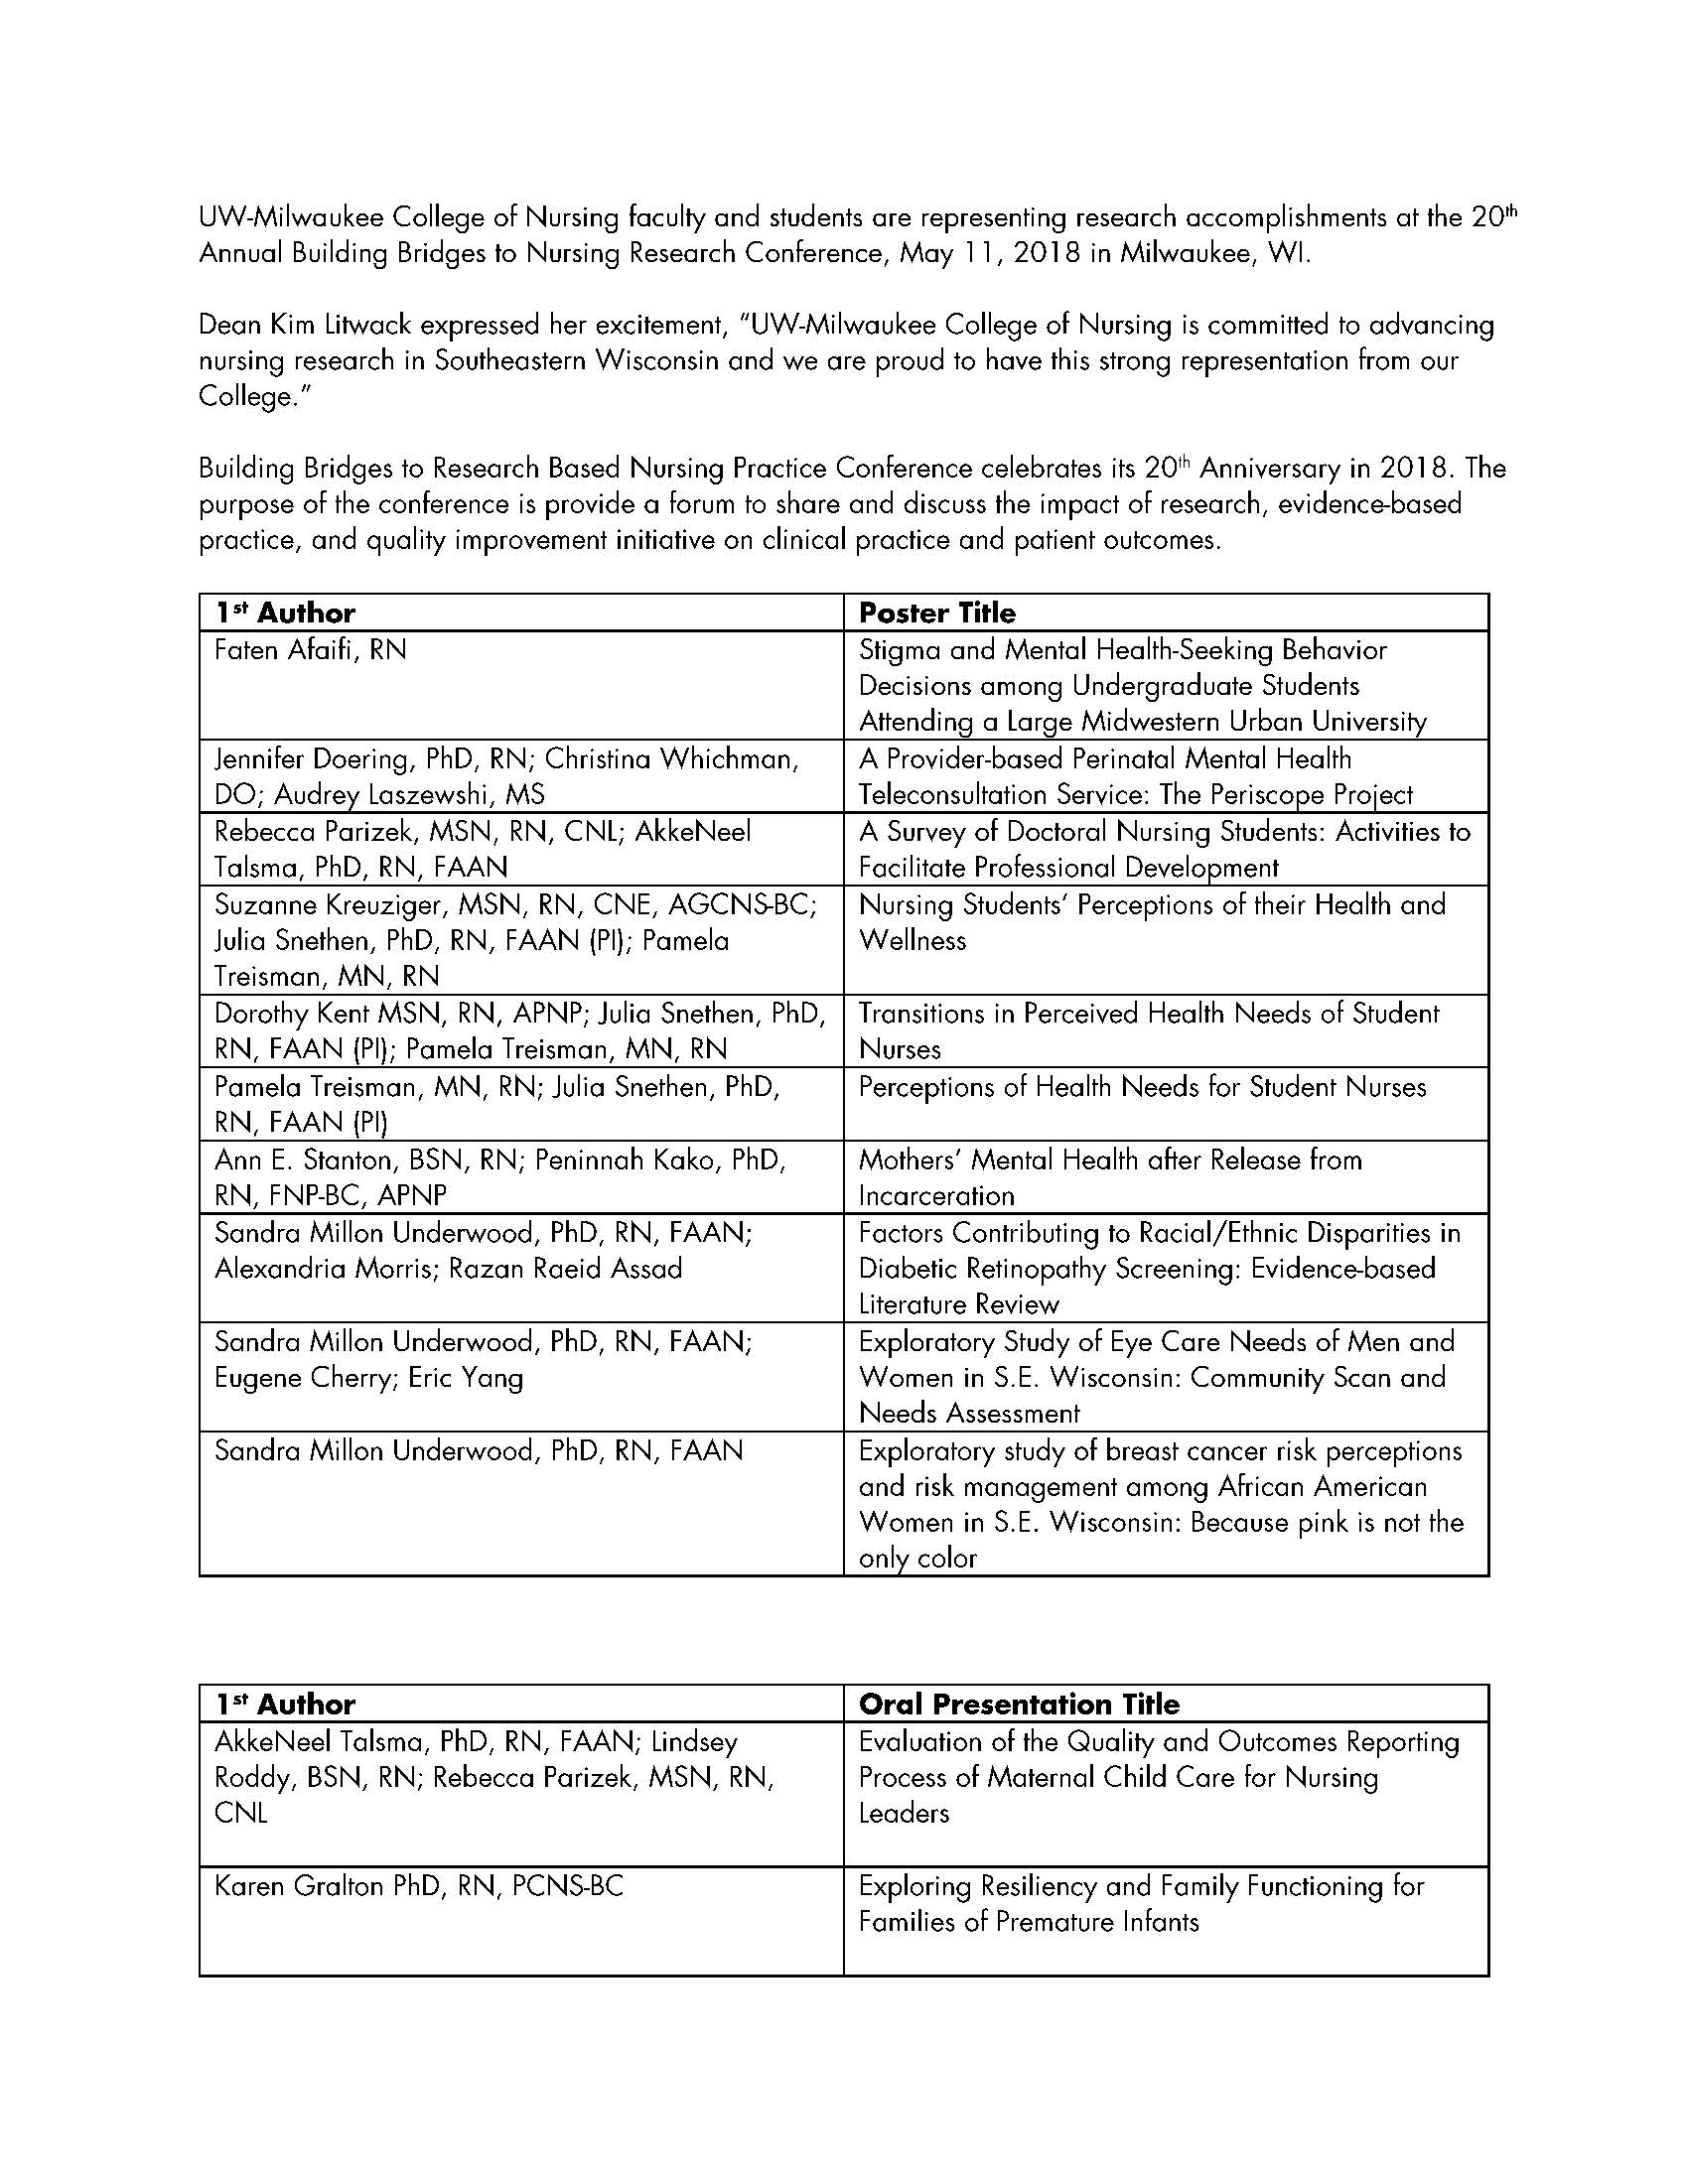 019 Nursing Research Paper Uwmweb Storycon 2018 Poster And Oral Authors Striking Sample Pdf Questions Writing Full